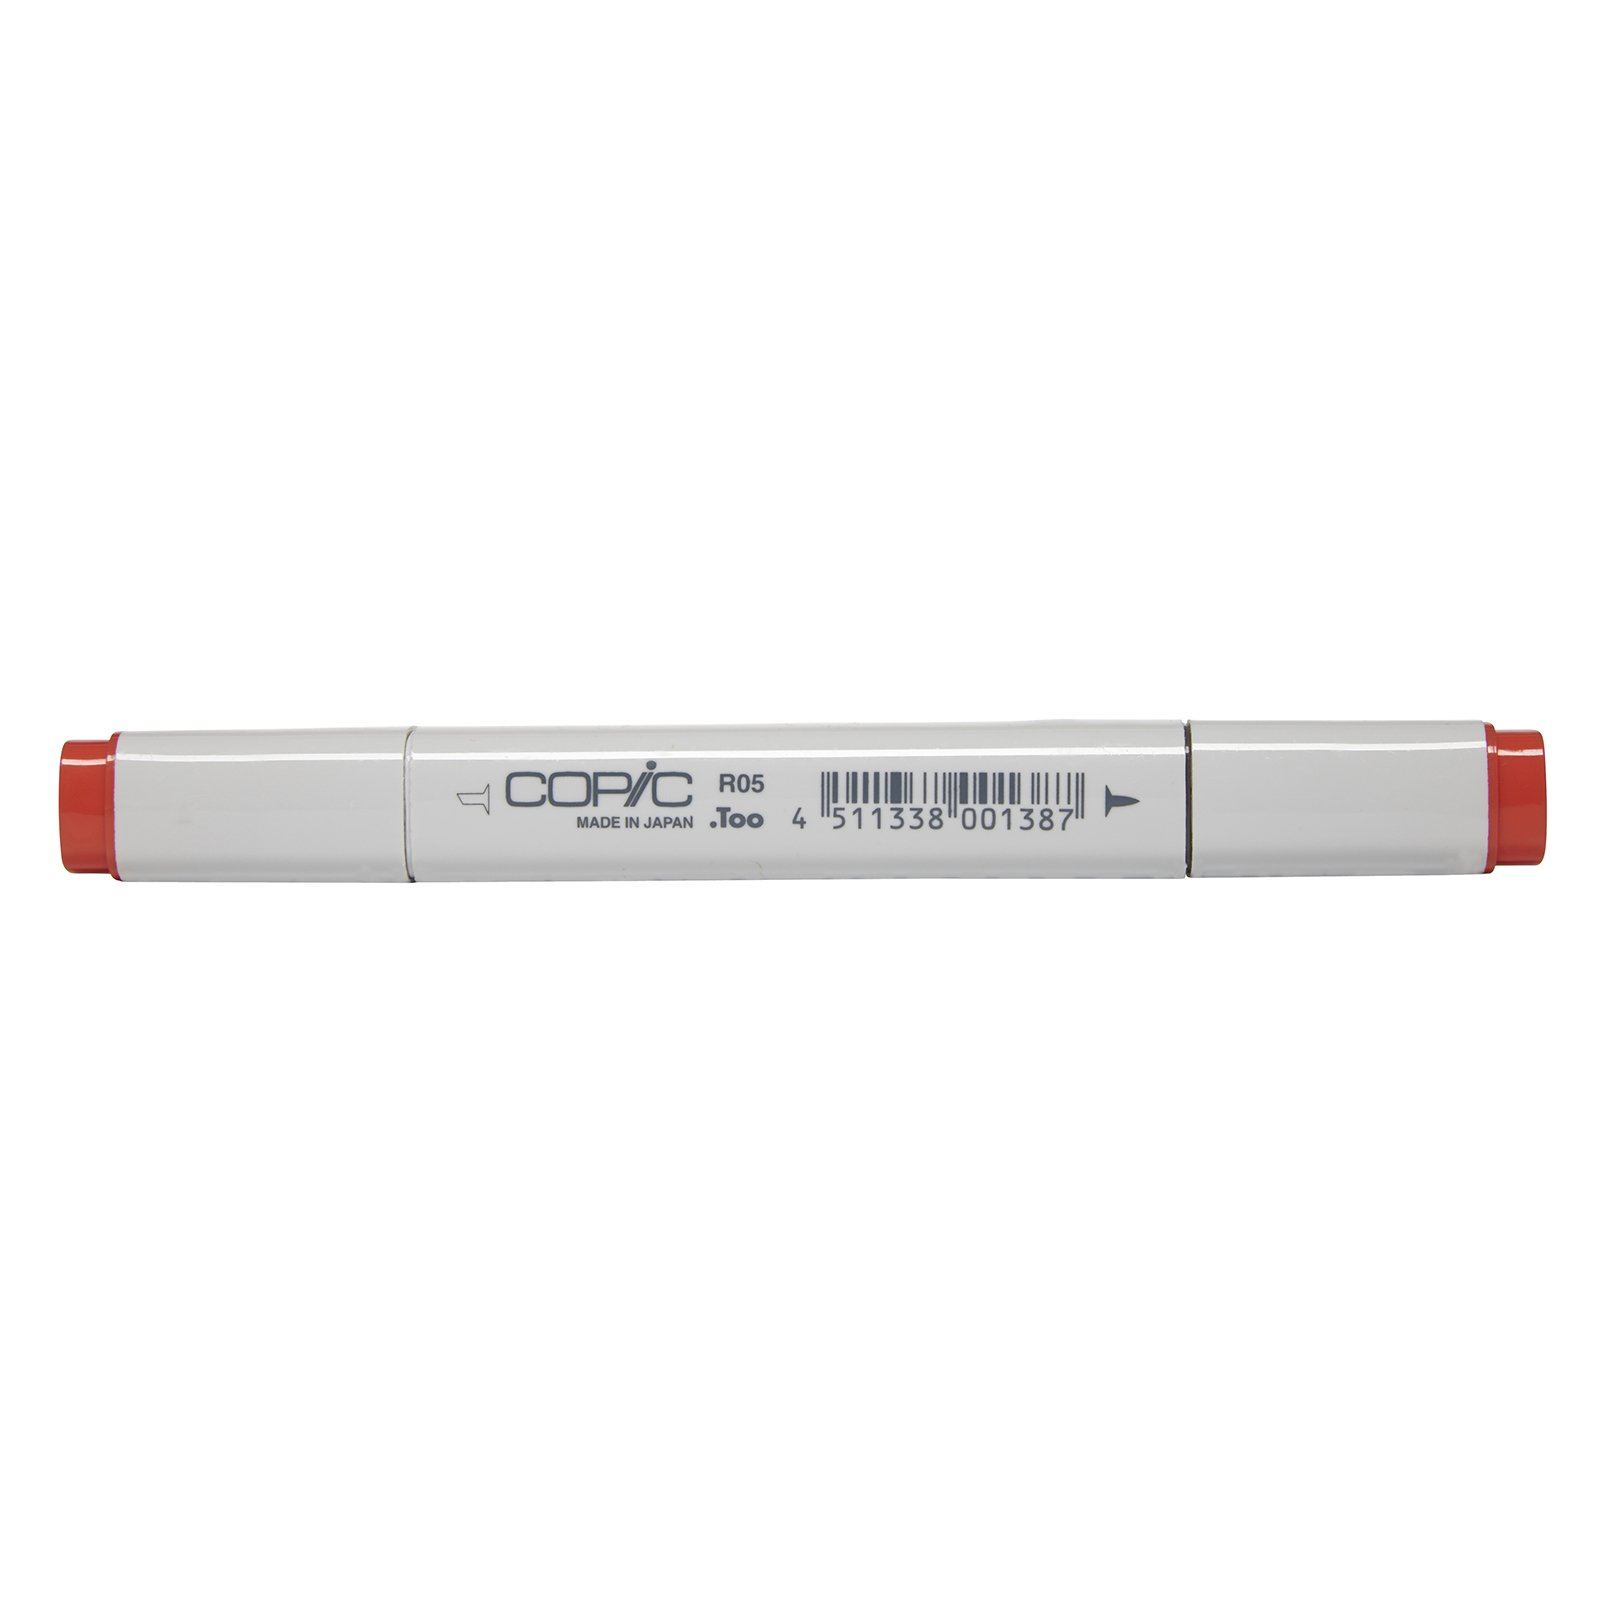 Copic Marker with Replaceable Nib, R05-Copic, Salmon Red